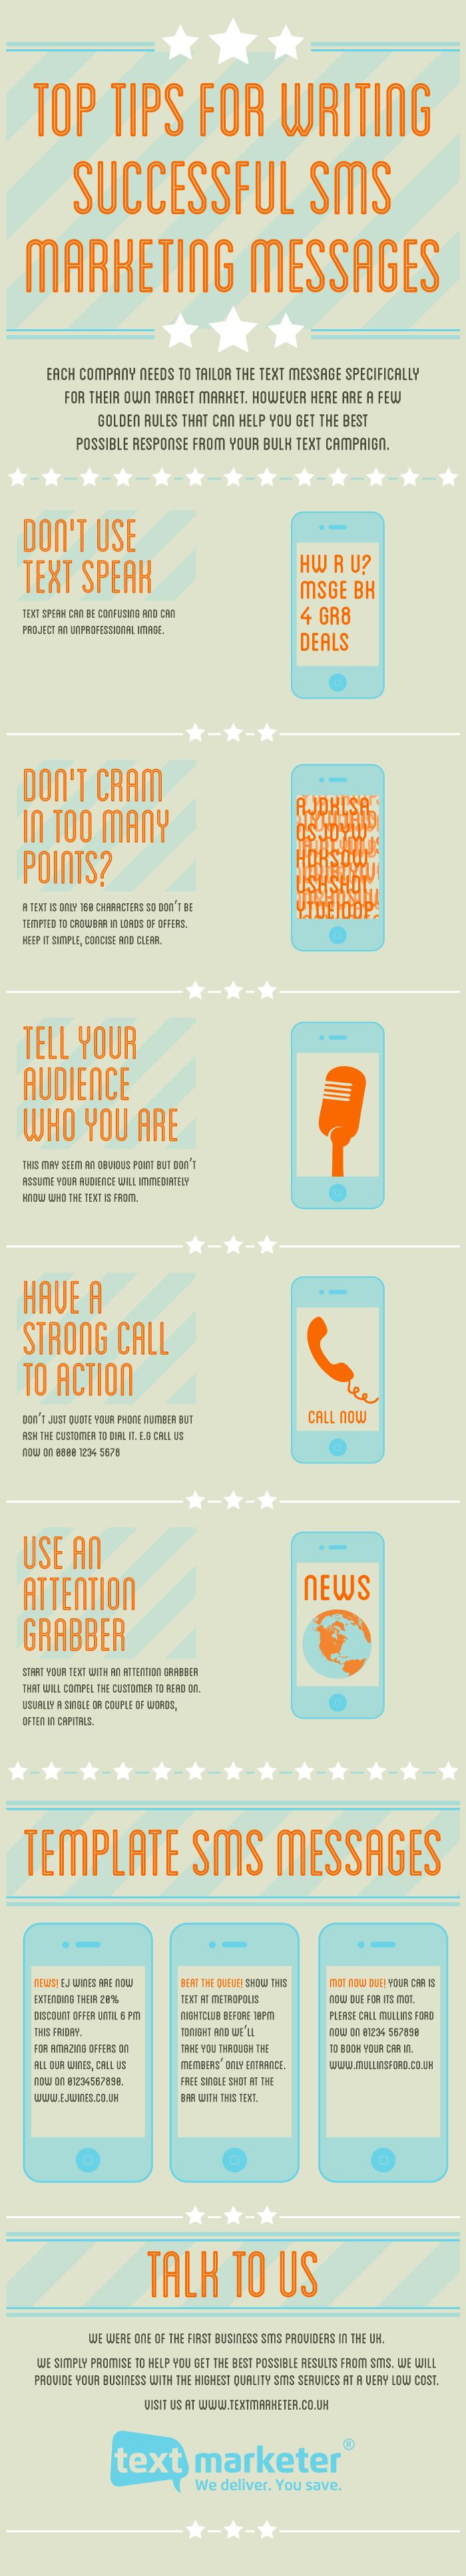 Top tips for writing successful SMS marketing messages   Visit our new infographic gallery at visualoop.com/